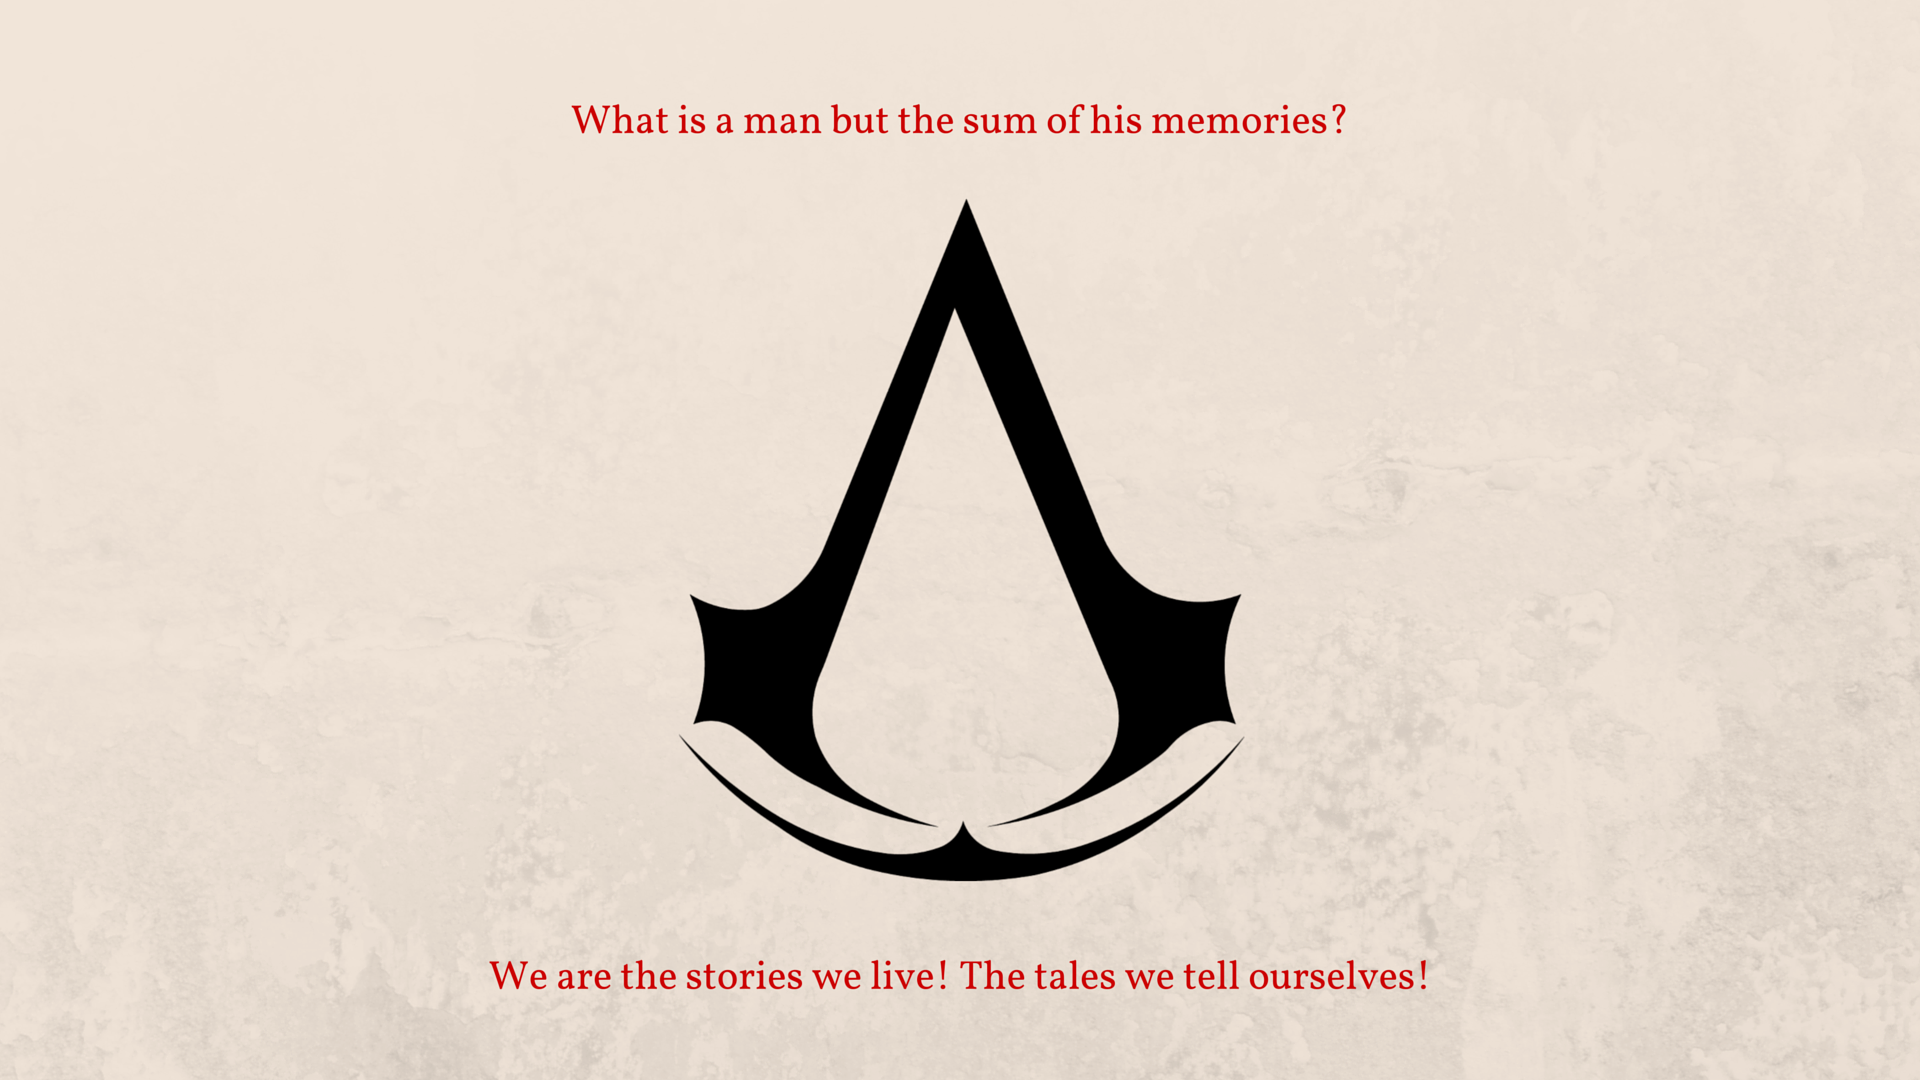 Assassin S Creed Revelations Quote 1920x1080 Revelations Quotes Assassins Creed Assassins Creed Wallpaper Iphone